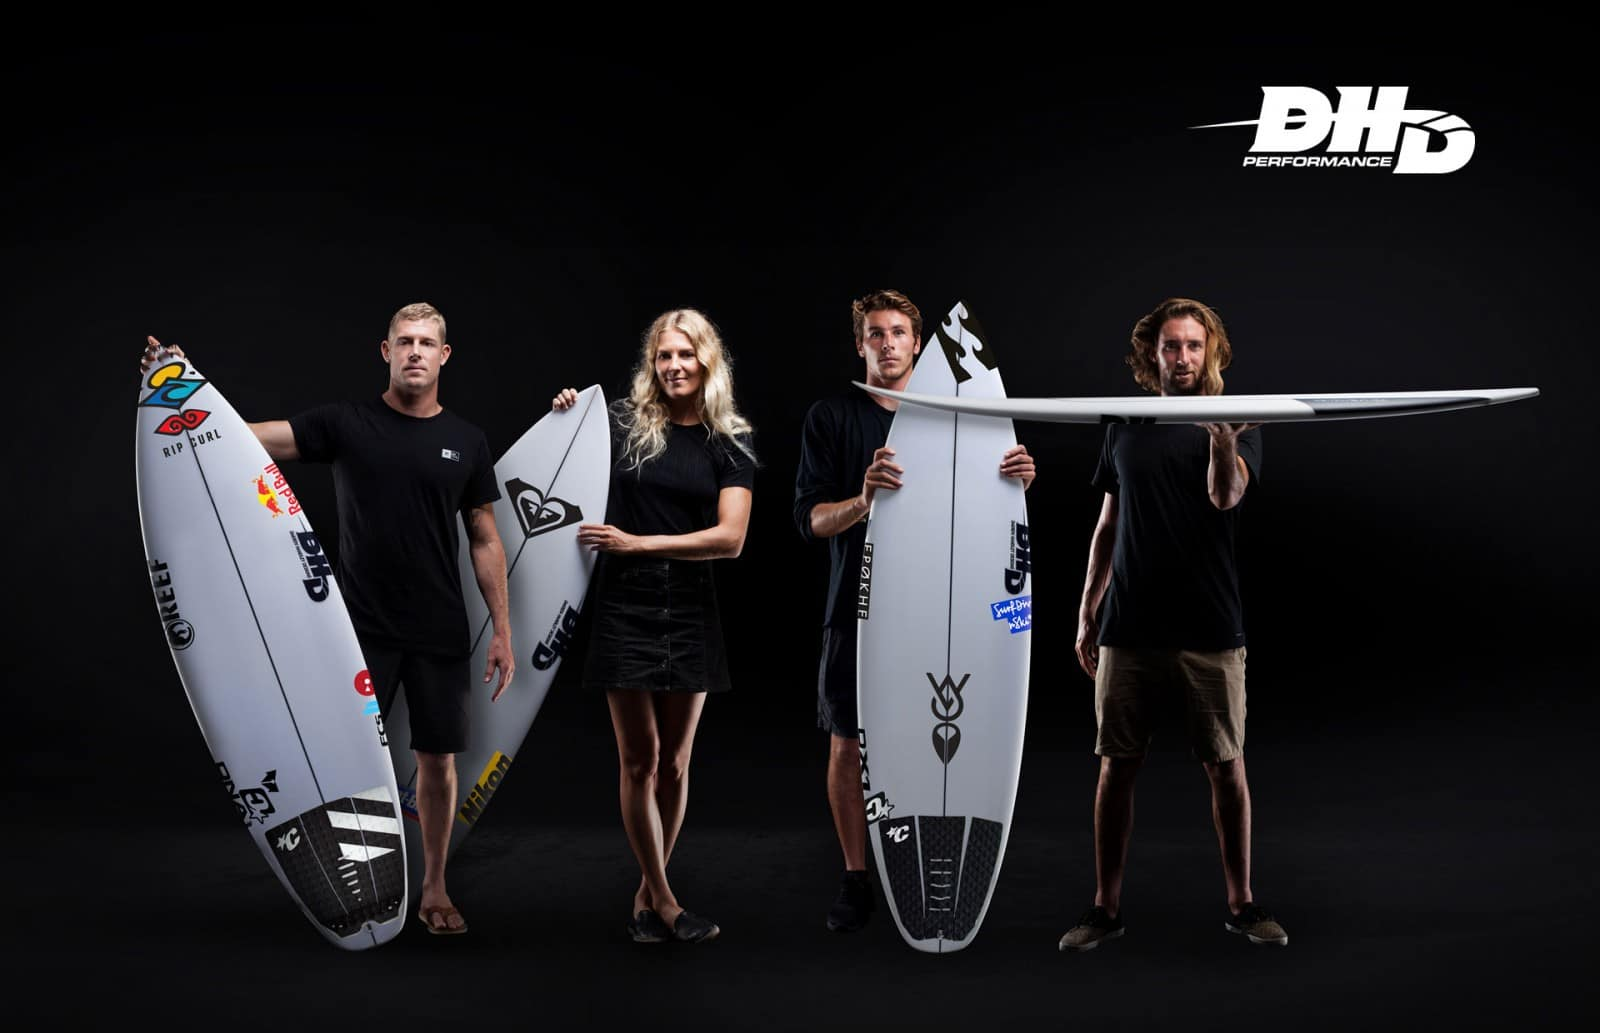 equipo-pro-dhd-surfboards